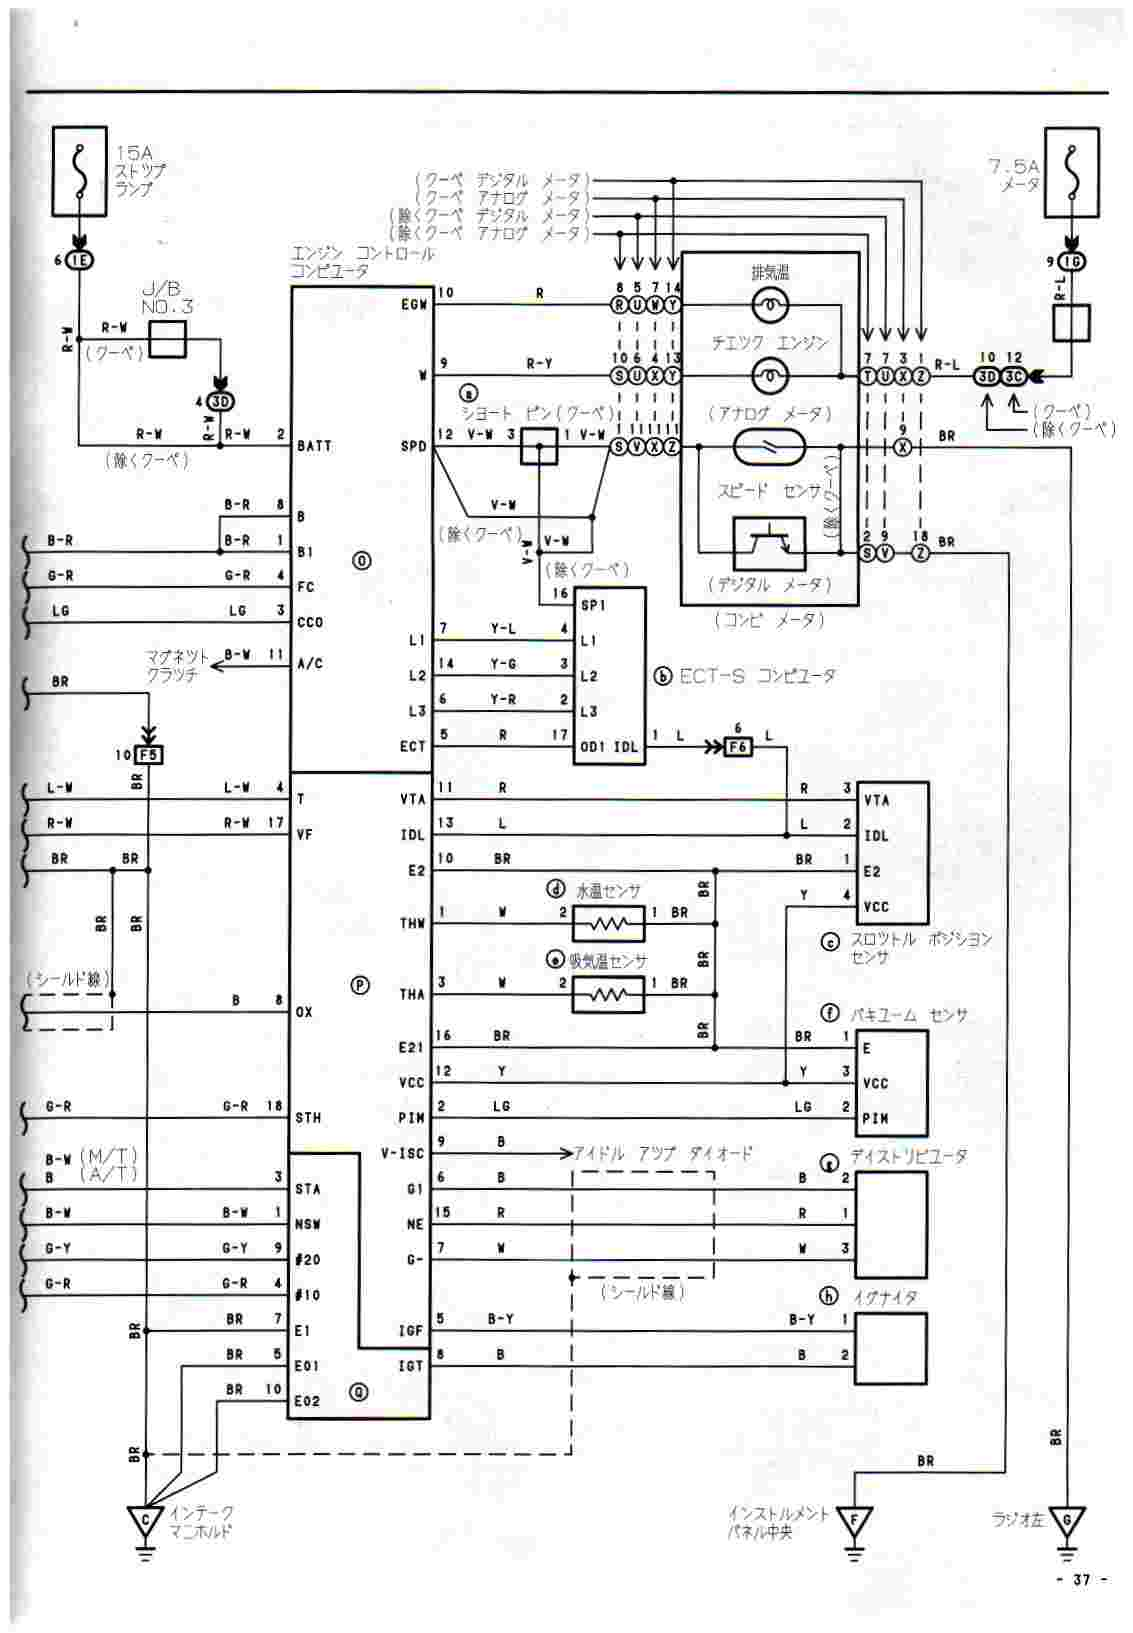 jdm ae86 wiring diagram human skull bones labeled toyota ooh latest corolla info n pic keretalama